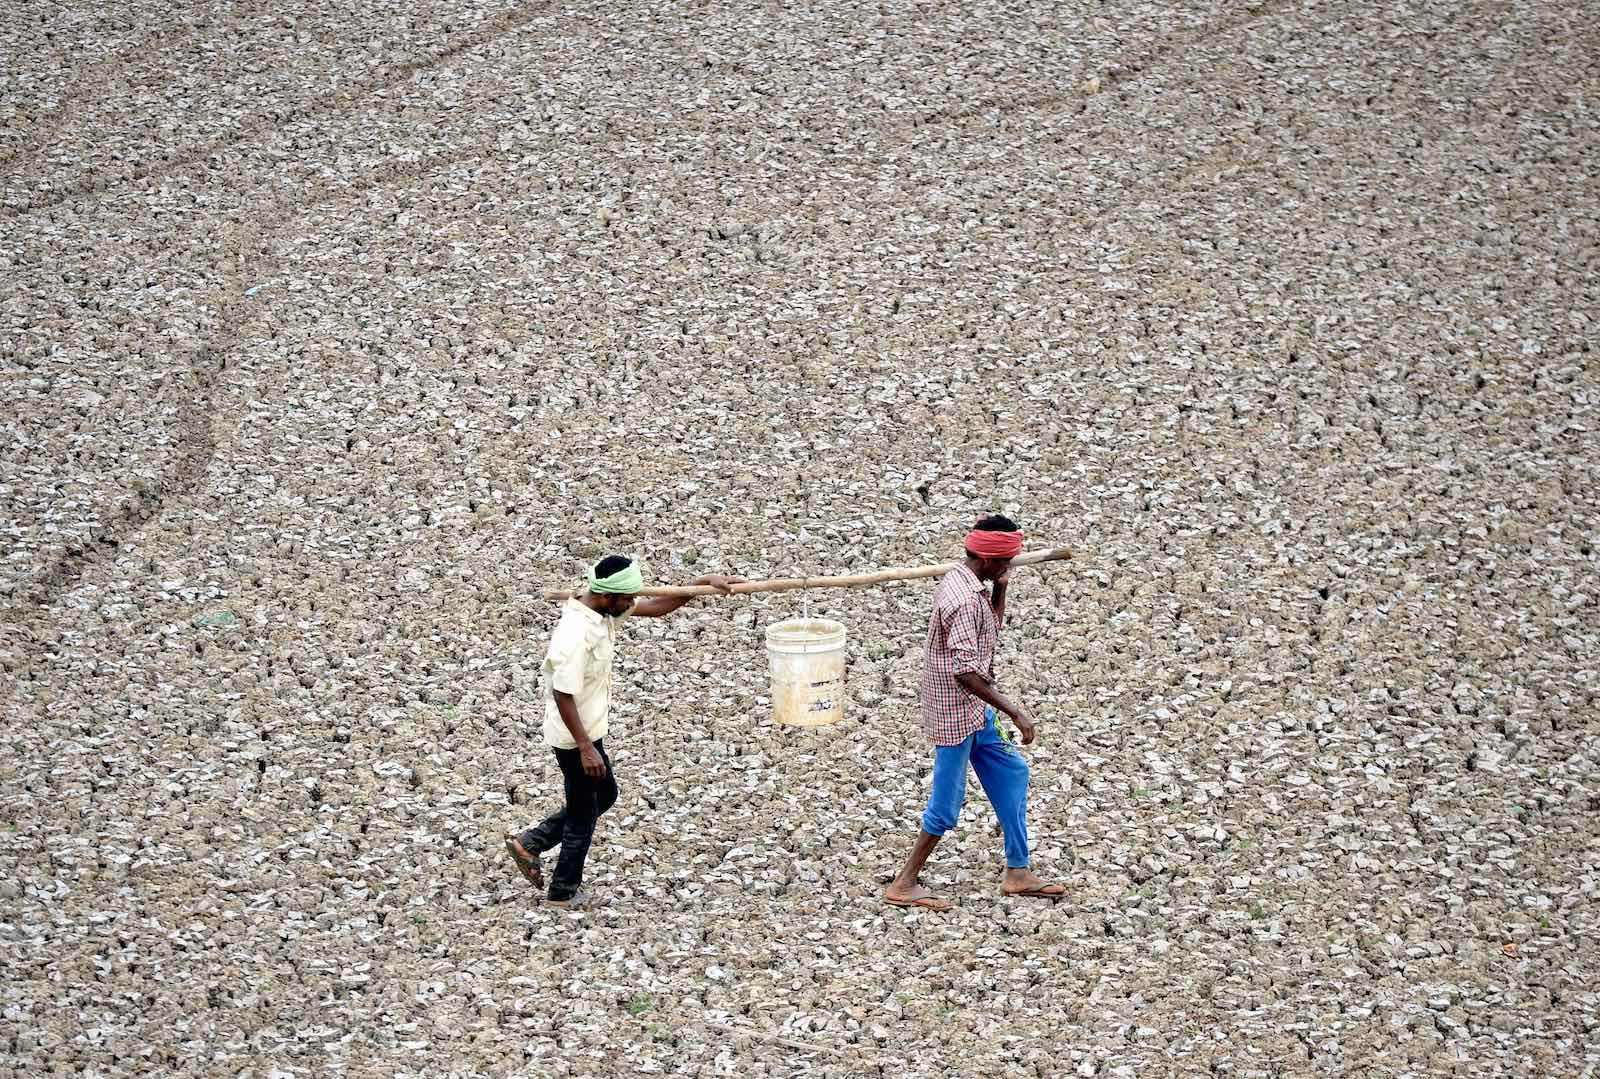 Carrying the last water from a pond in the dried-out Puzhal reservoir on the outskirts of Chennai (Photo: Arun Sankar via Getty)